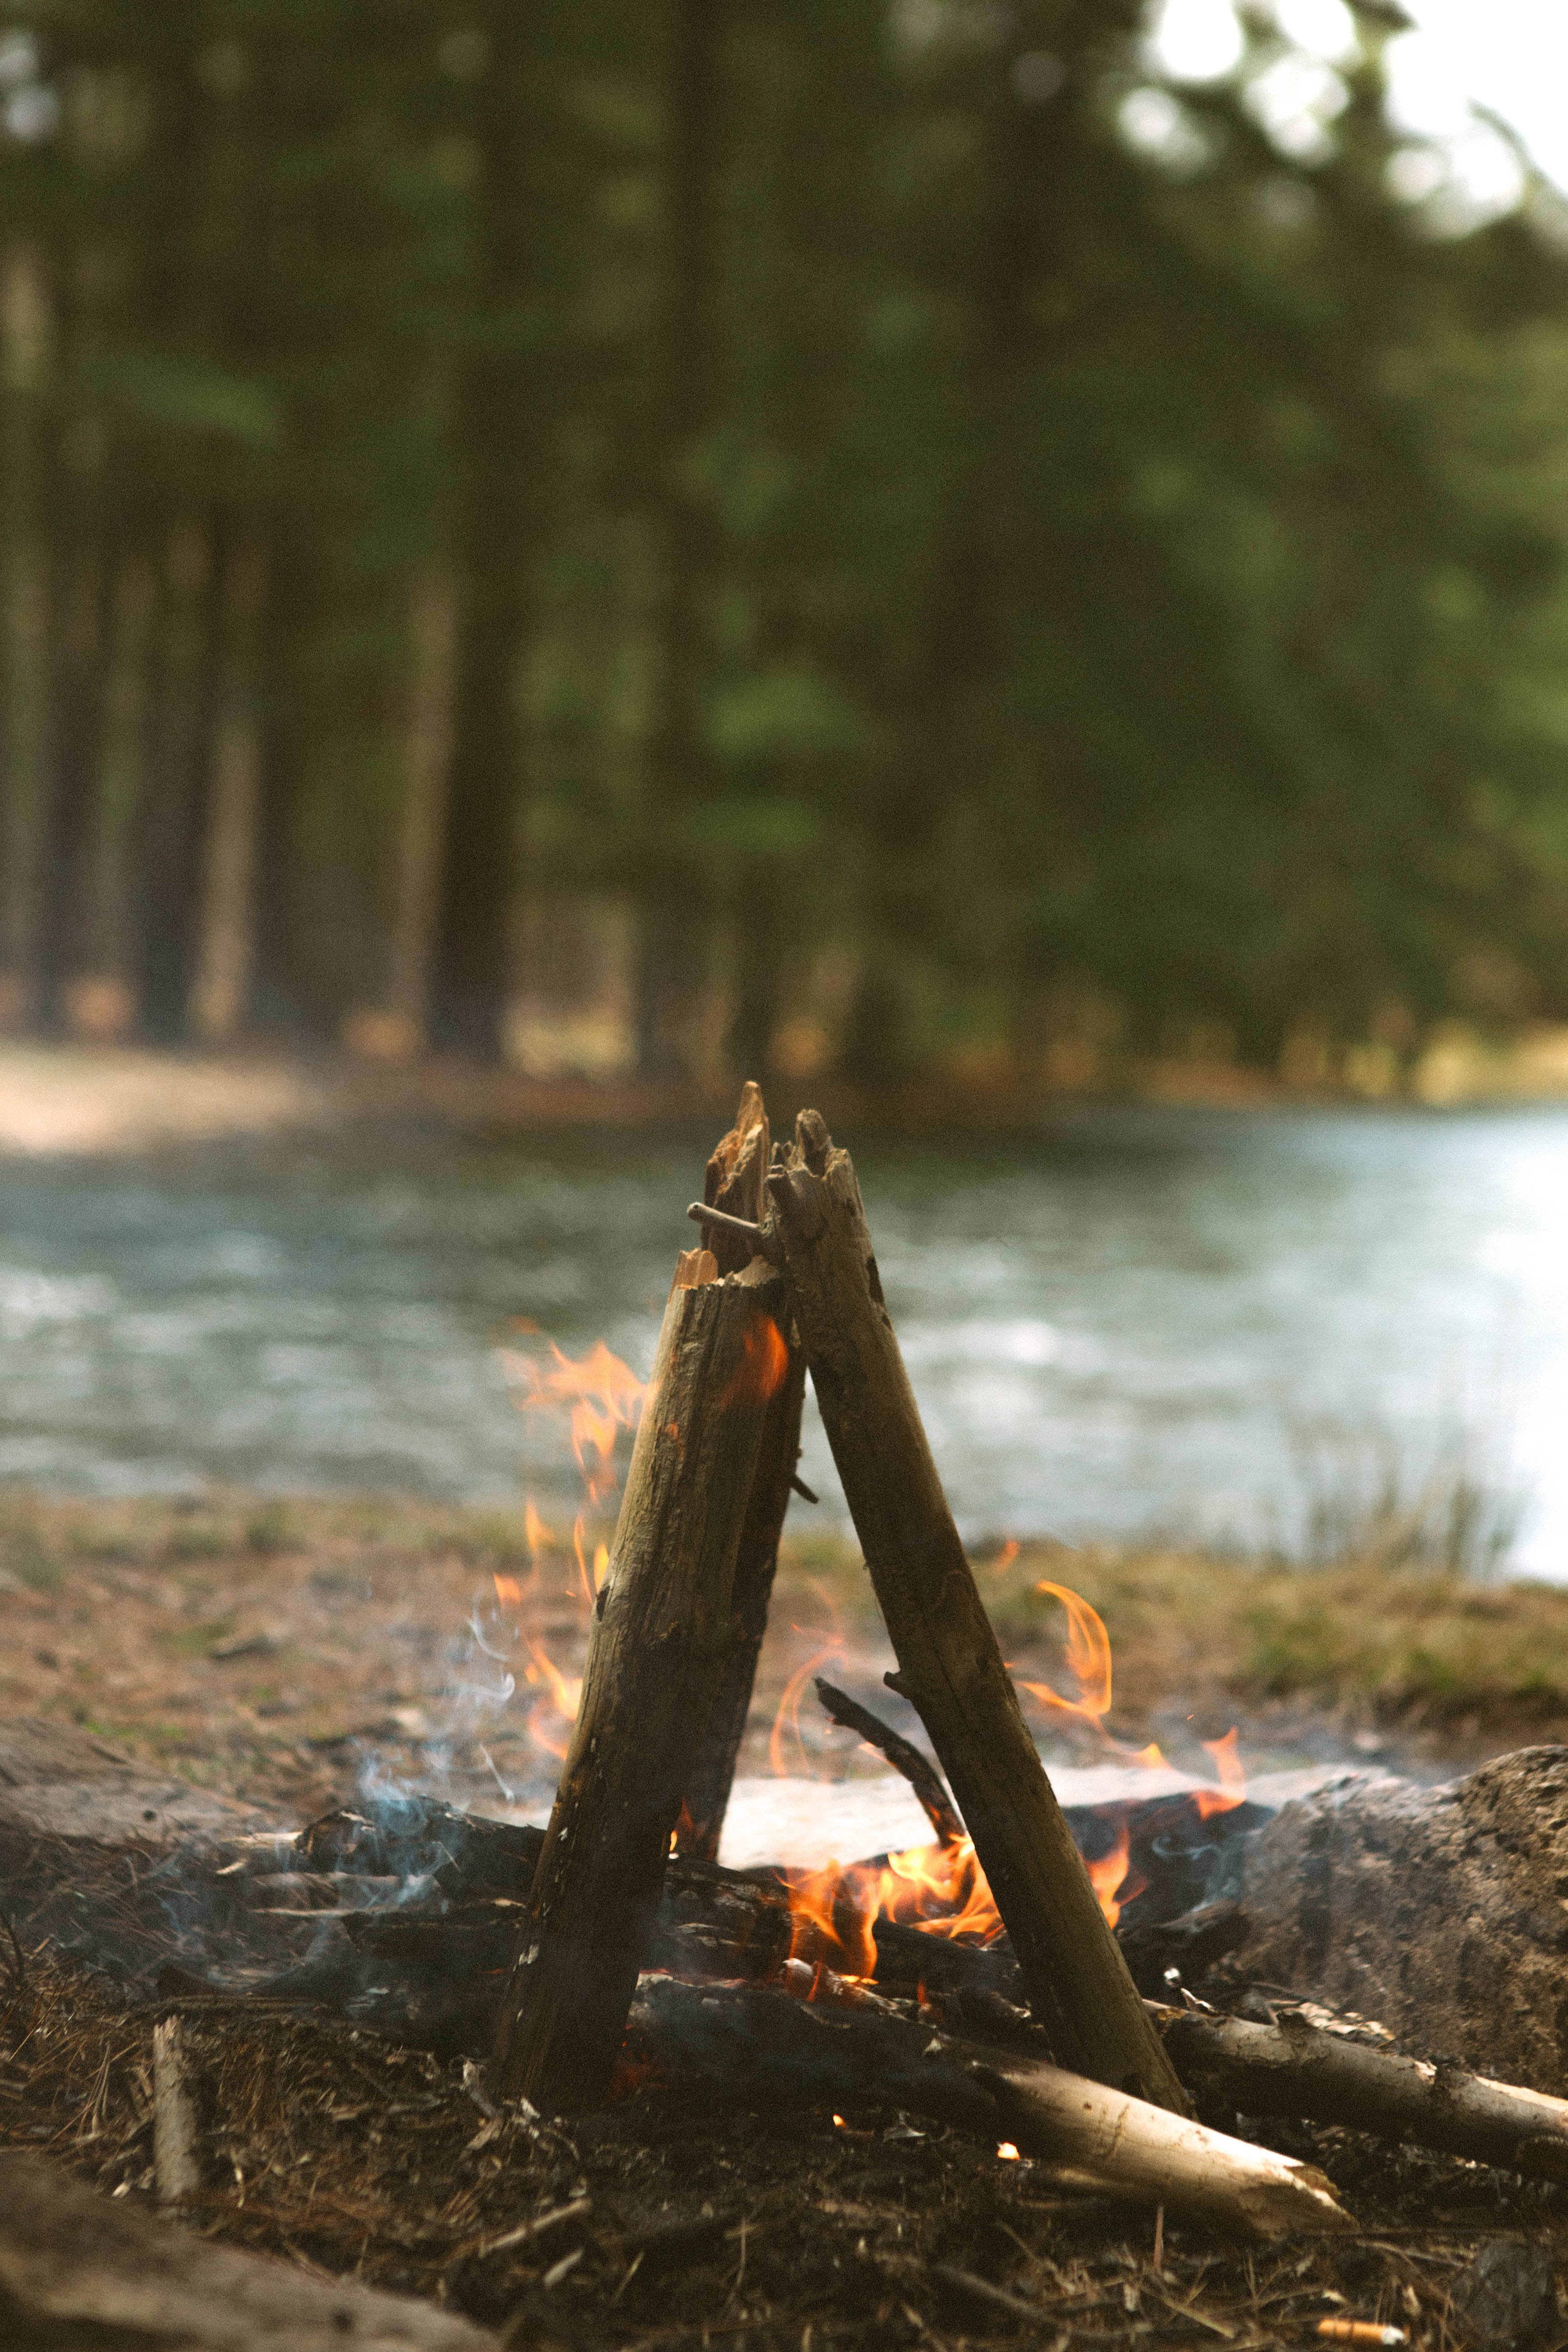 bonfire burning near body of water in a forest